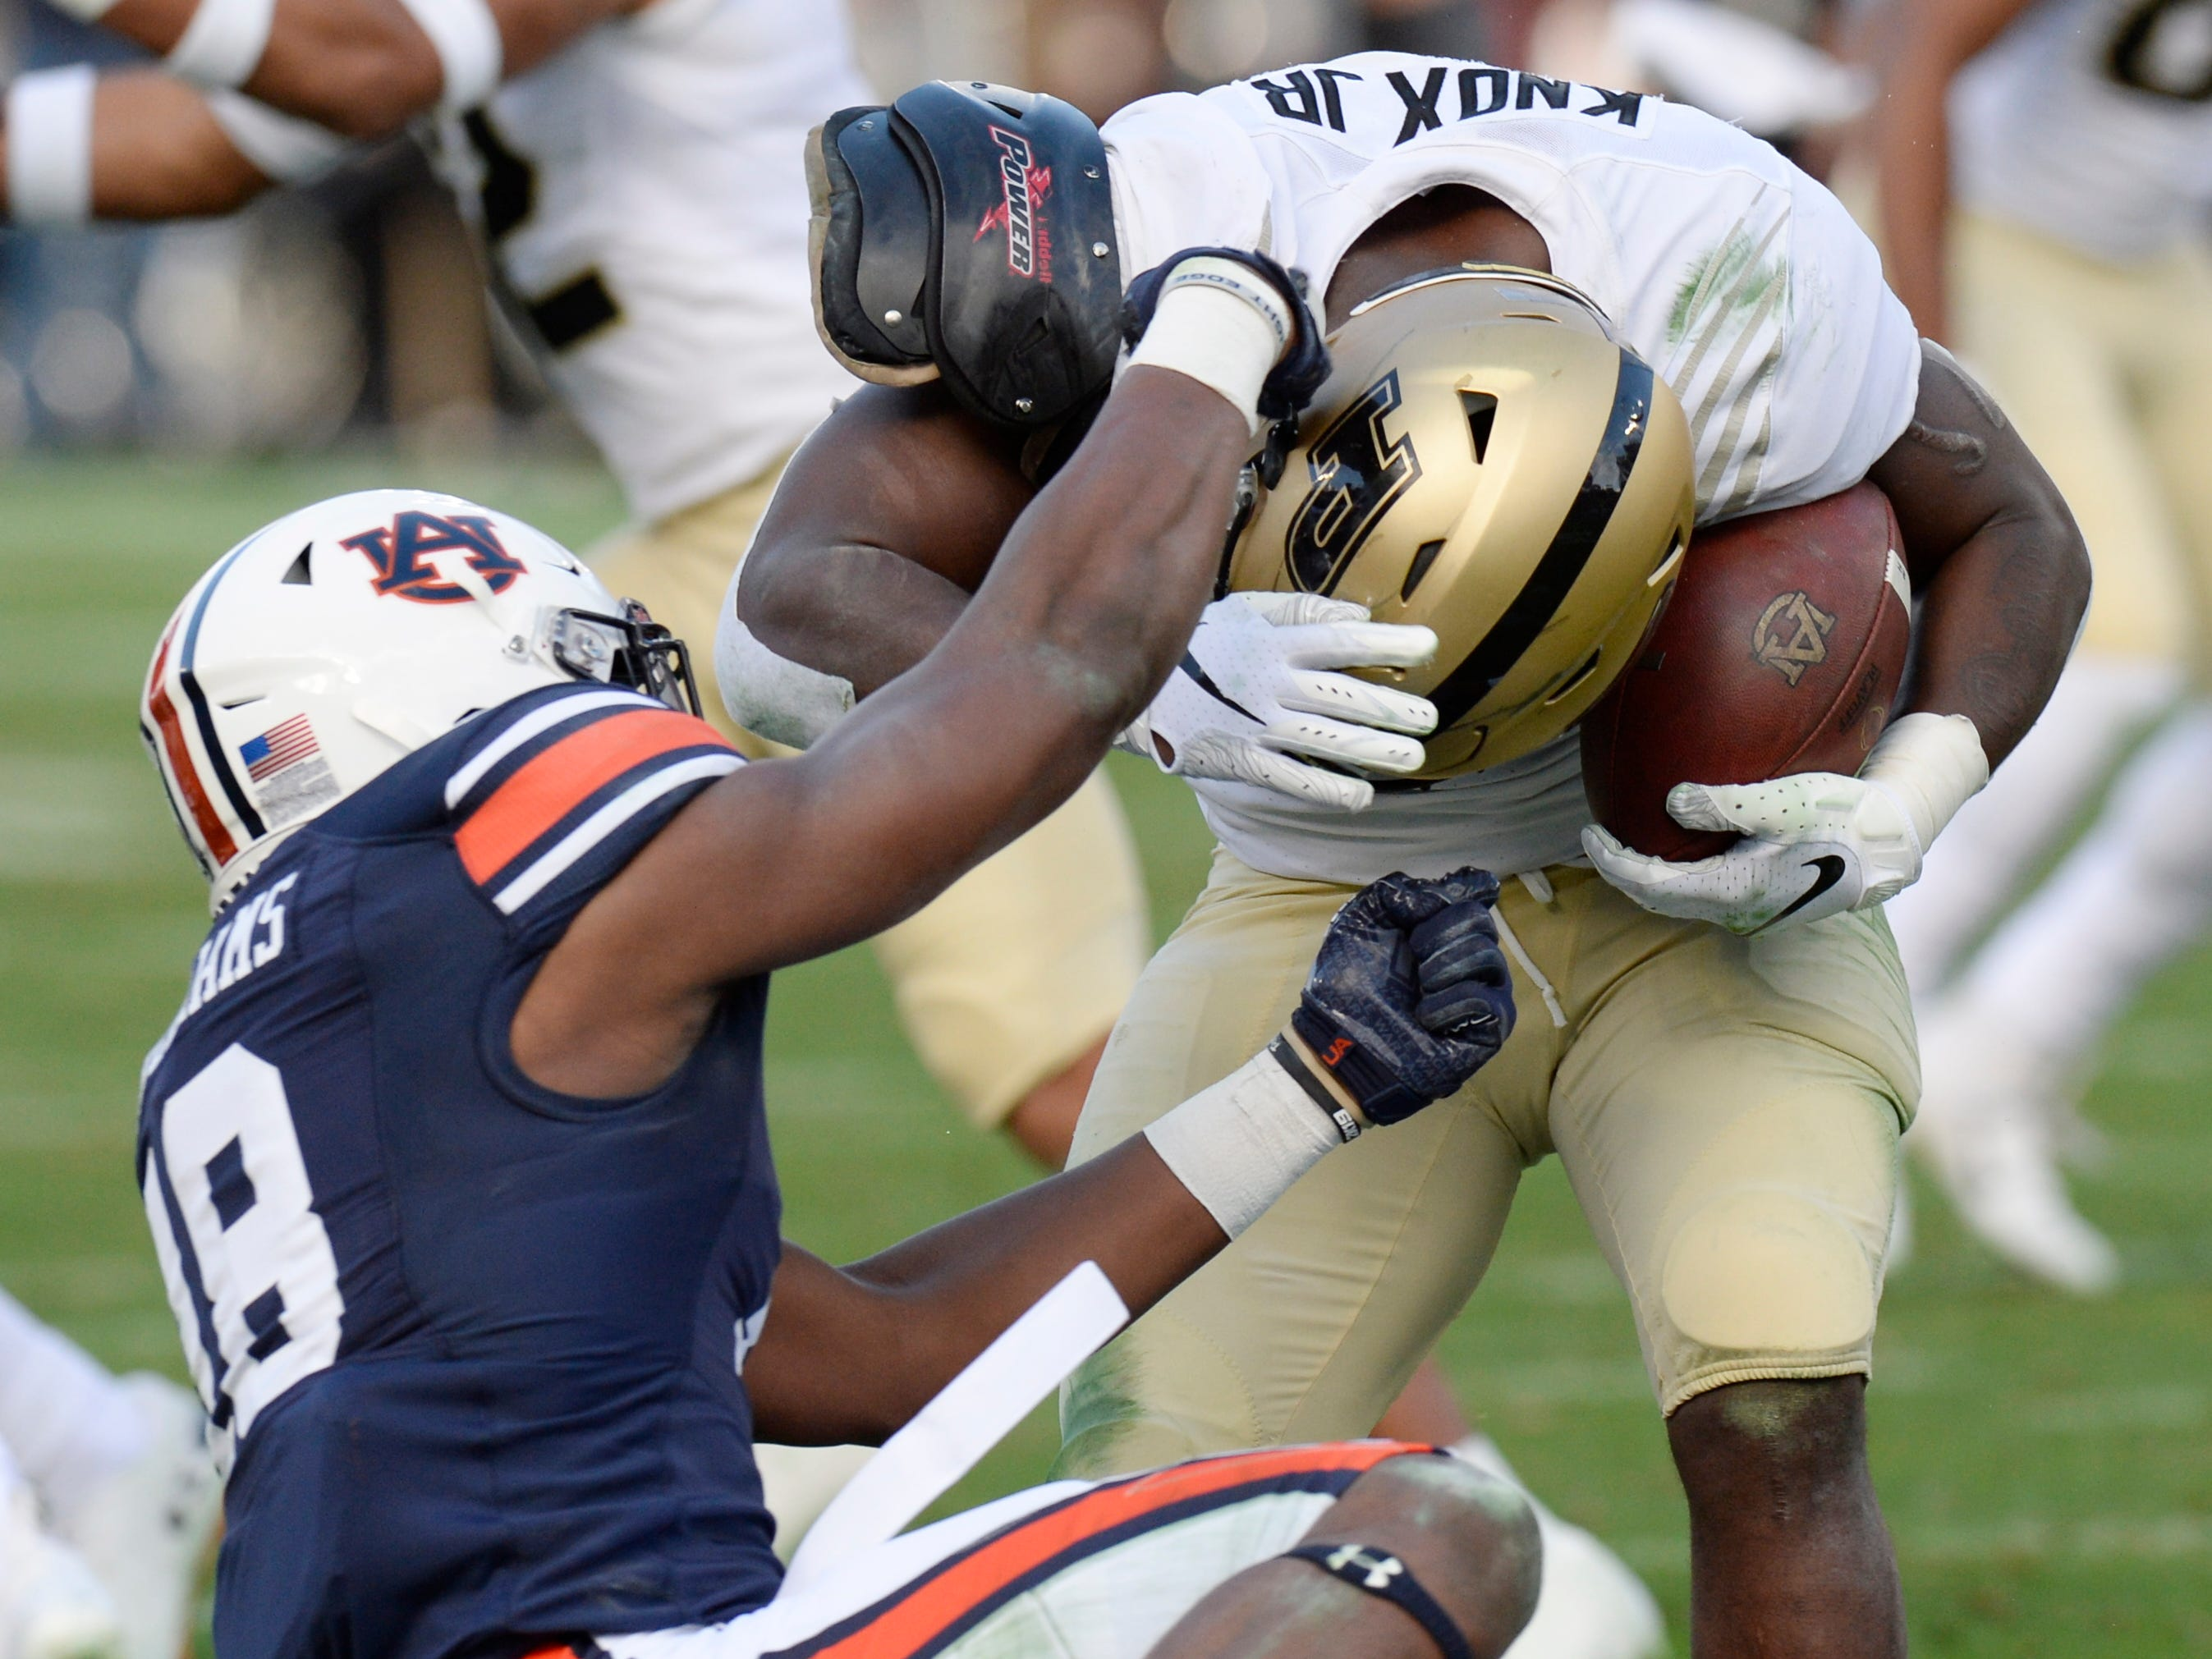 Auburn defensive back Jayvaughn Myers (18) brings down Purdue running back D.J. Knox (1) in the second quarter of the Music City Bowl NCAA college football game Friday, Dec. 28, 2018, at Nissan Stadium in Nashville, Tenn.